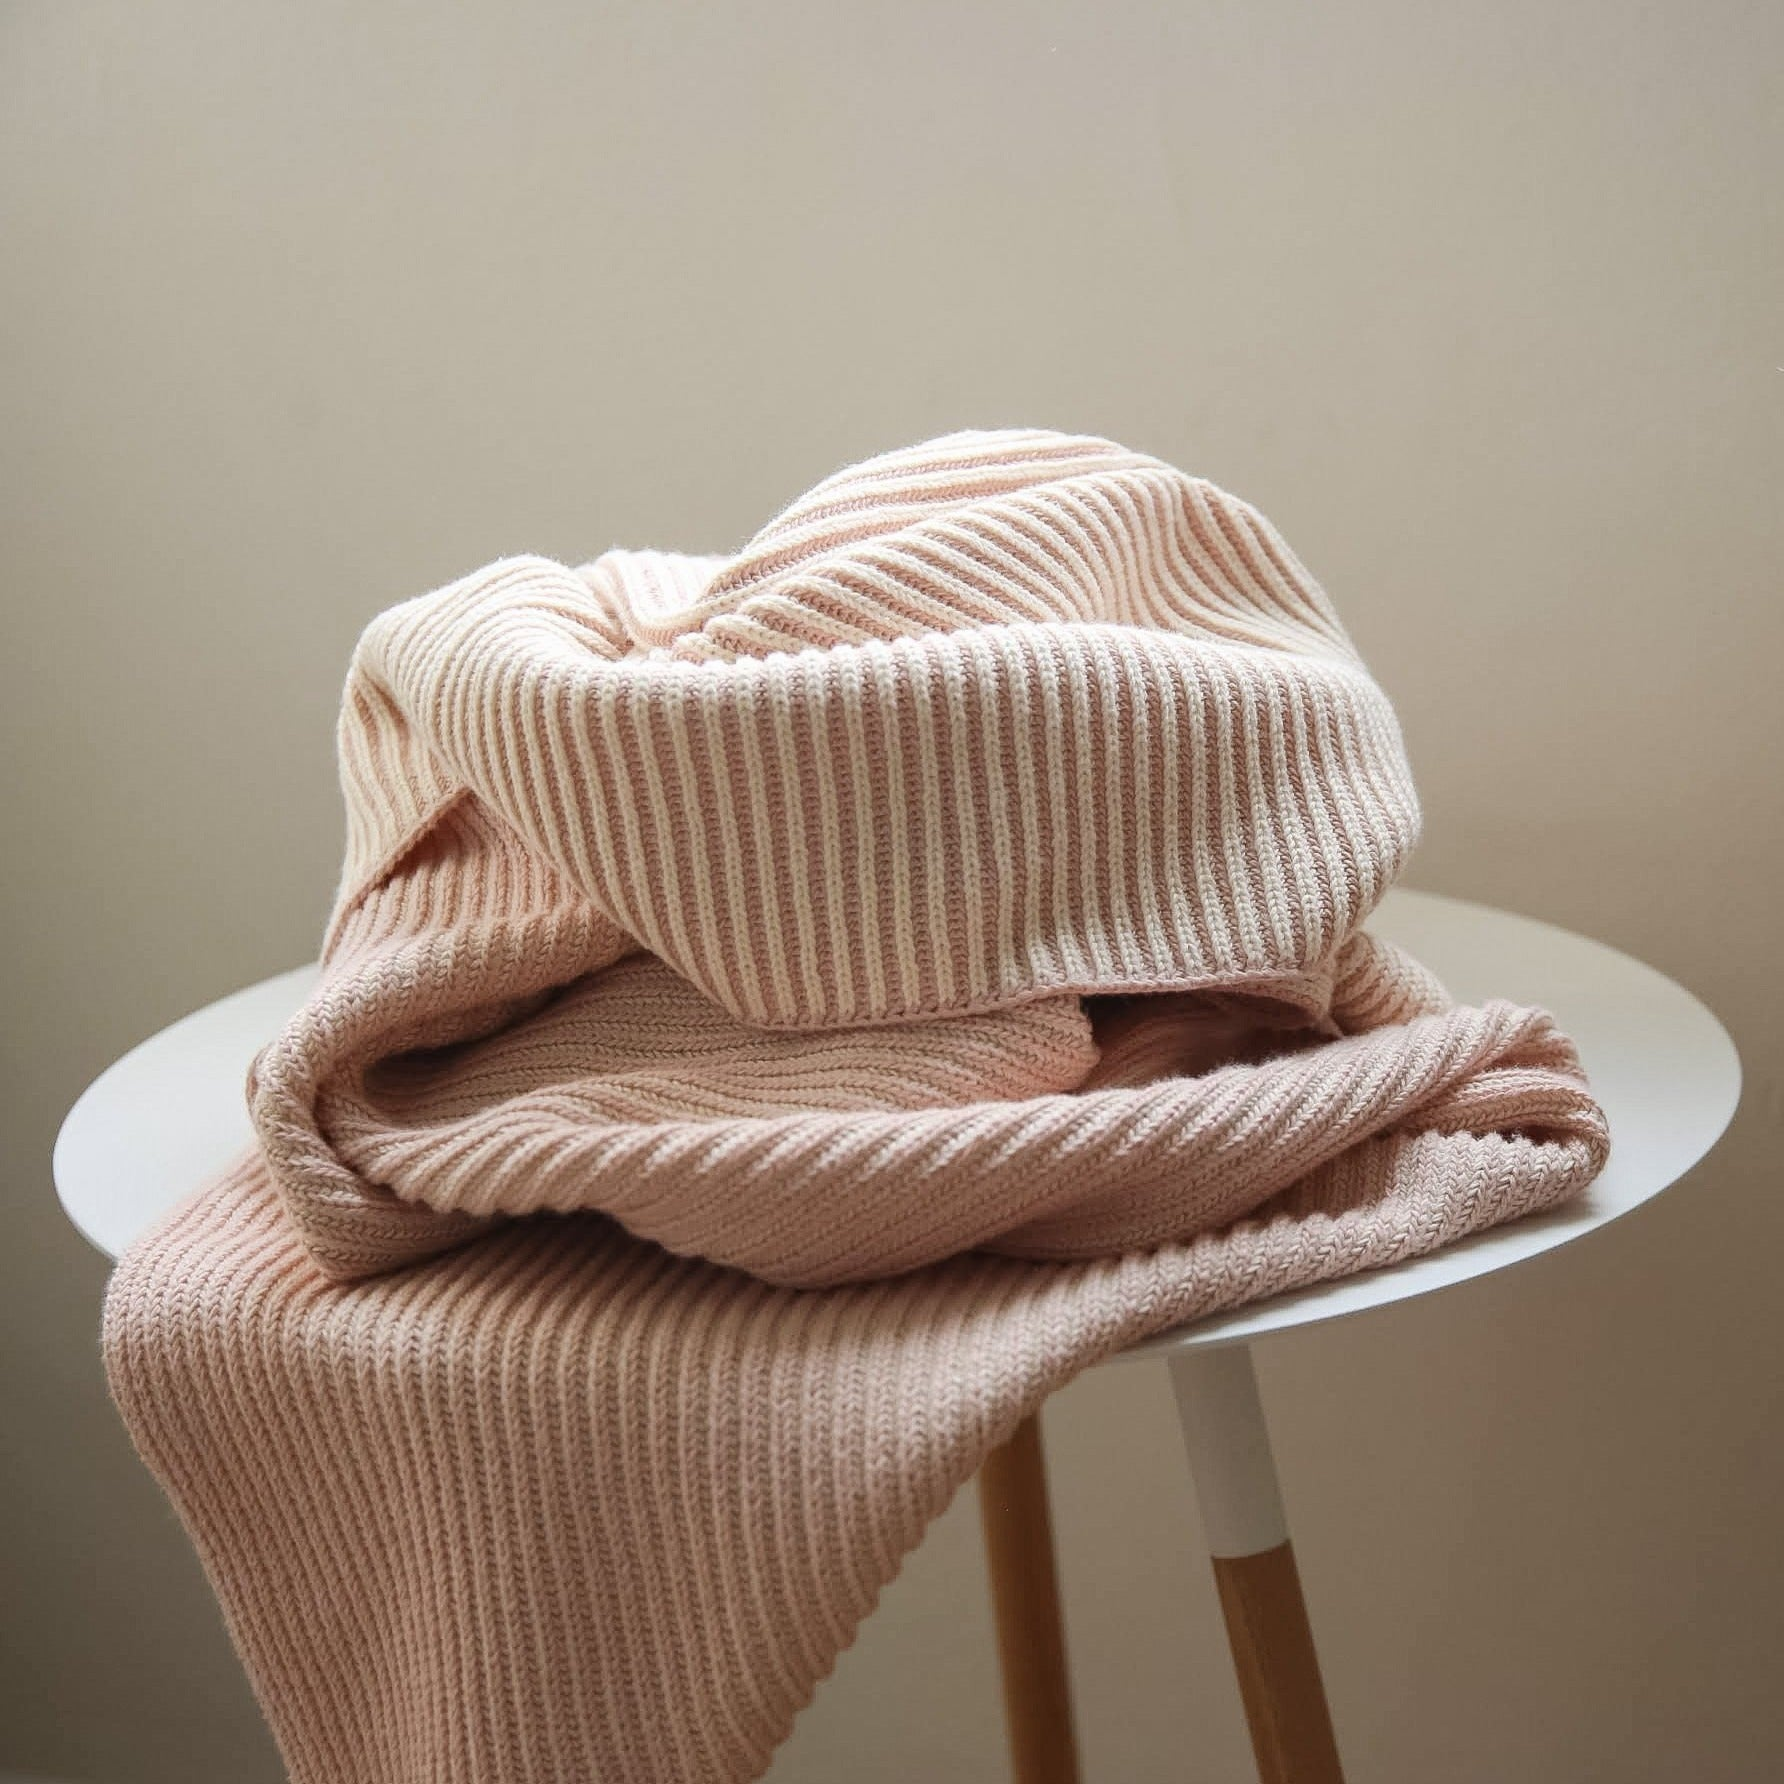 koko's nest | LINE Rose | 100% Organic Cotton | knit baby blanket | made in usa